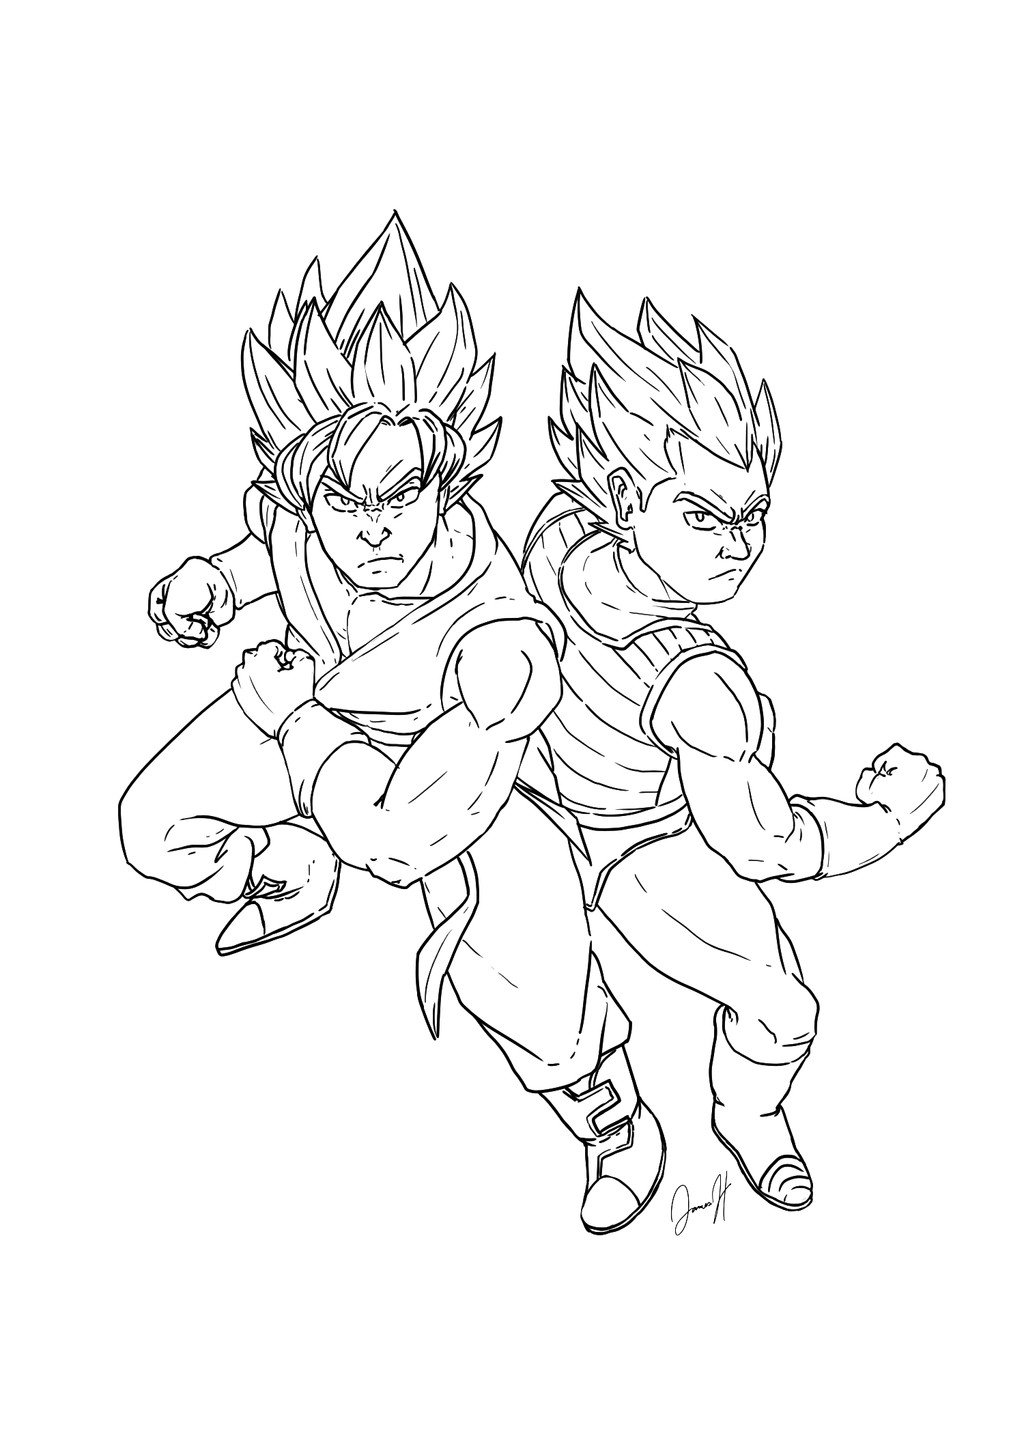 1024x1434 Trunks Coloring Pages Coloring Pages, Goku Ssgss Coloring Pages